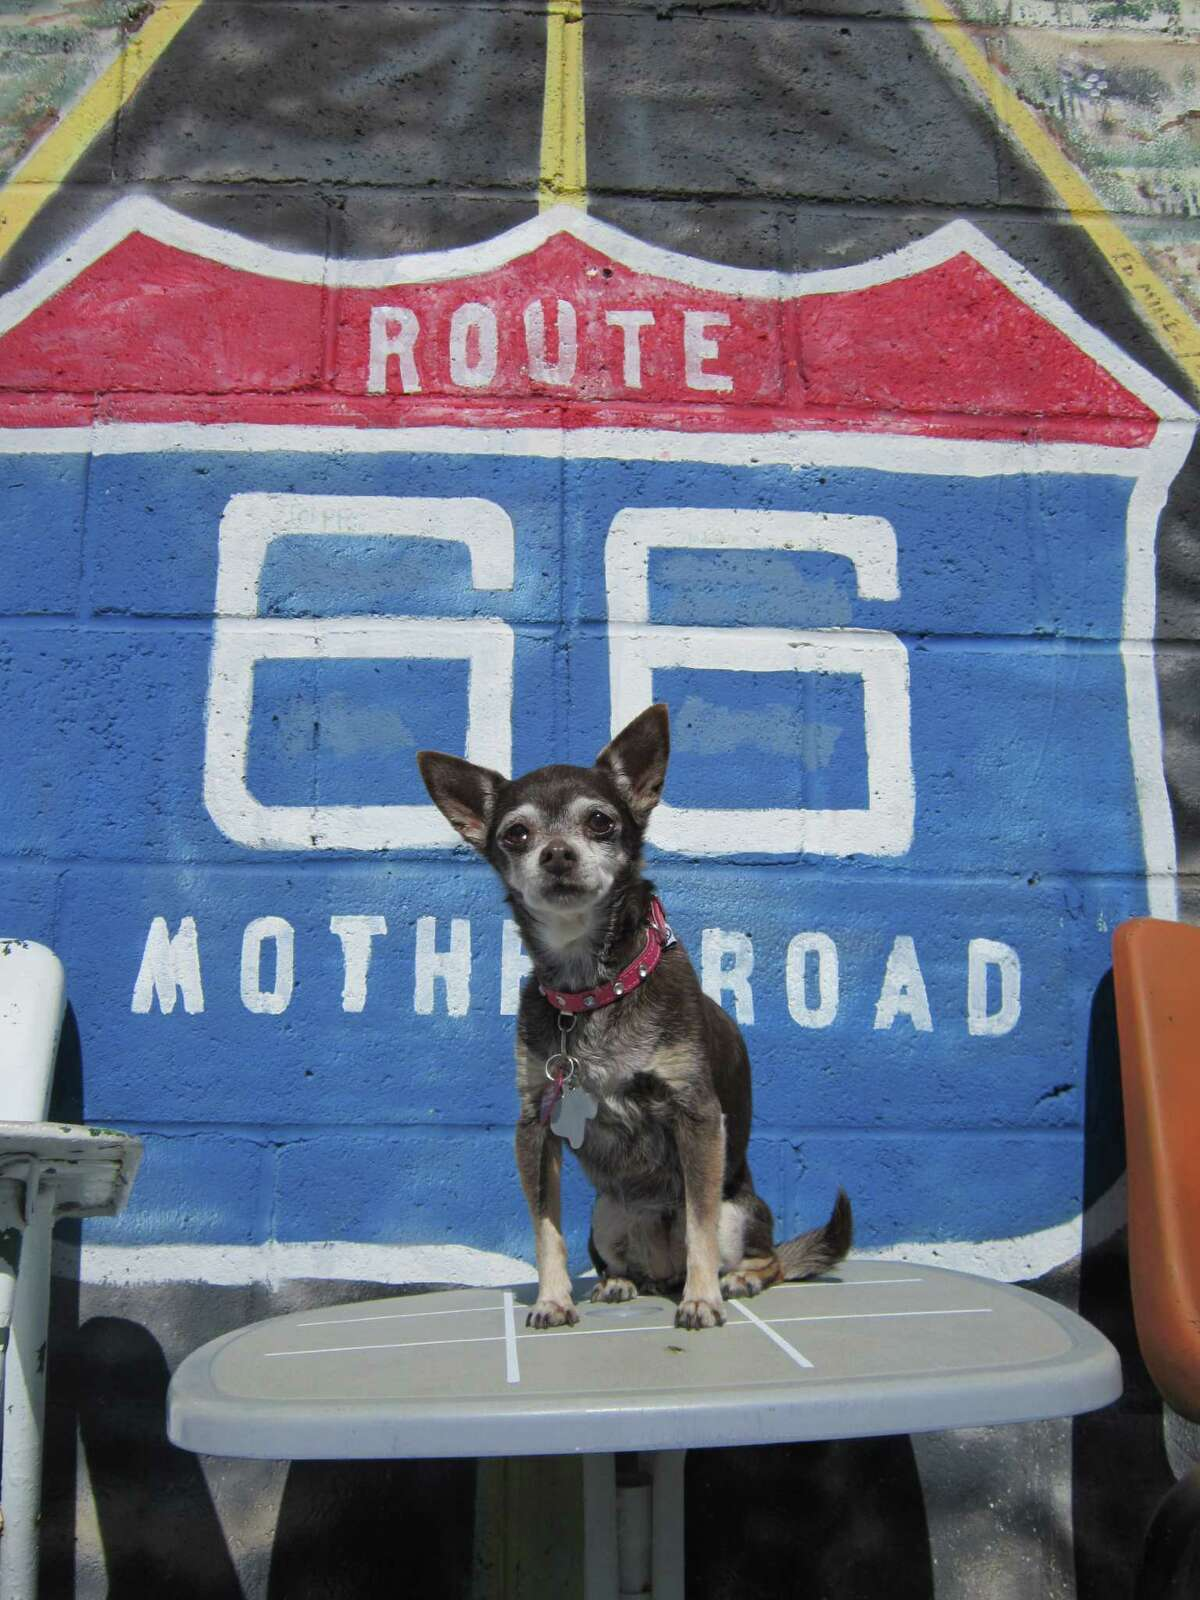 Sasha, Michelle Newman's 17-year-old Chihuahua, takes a break in Oklahoma on Route 66.